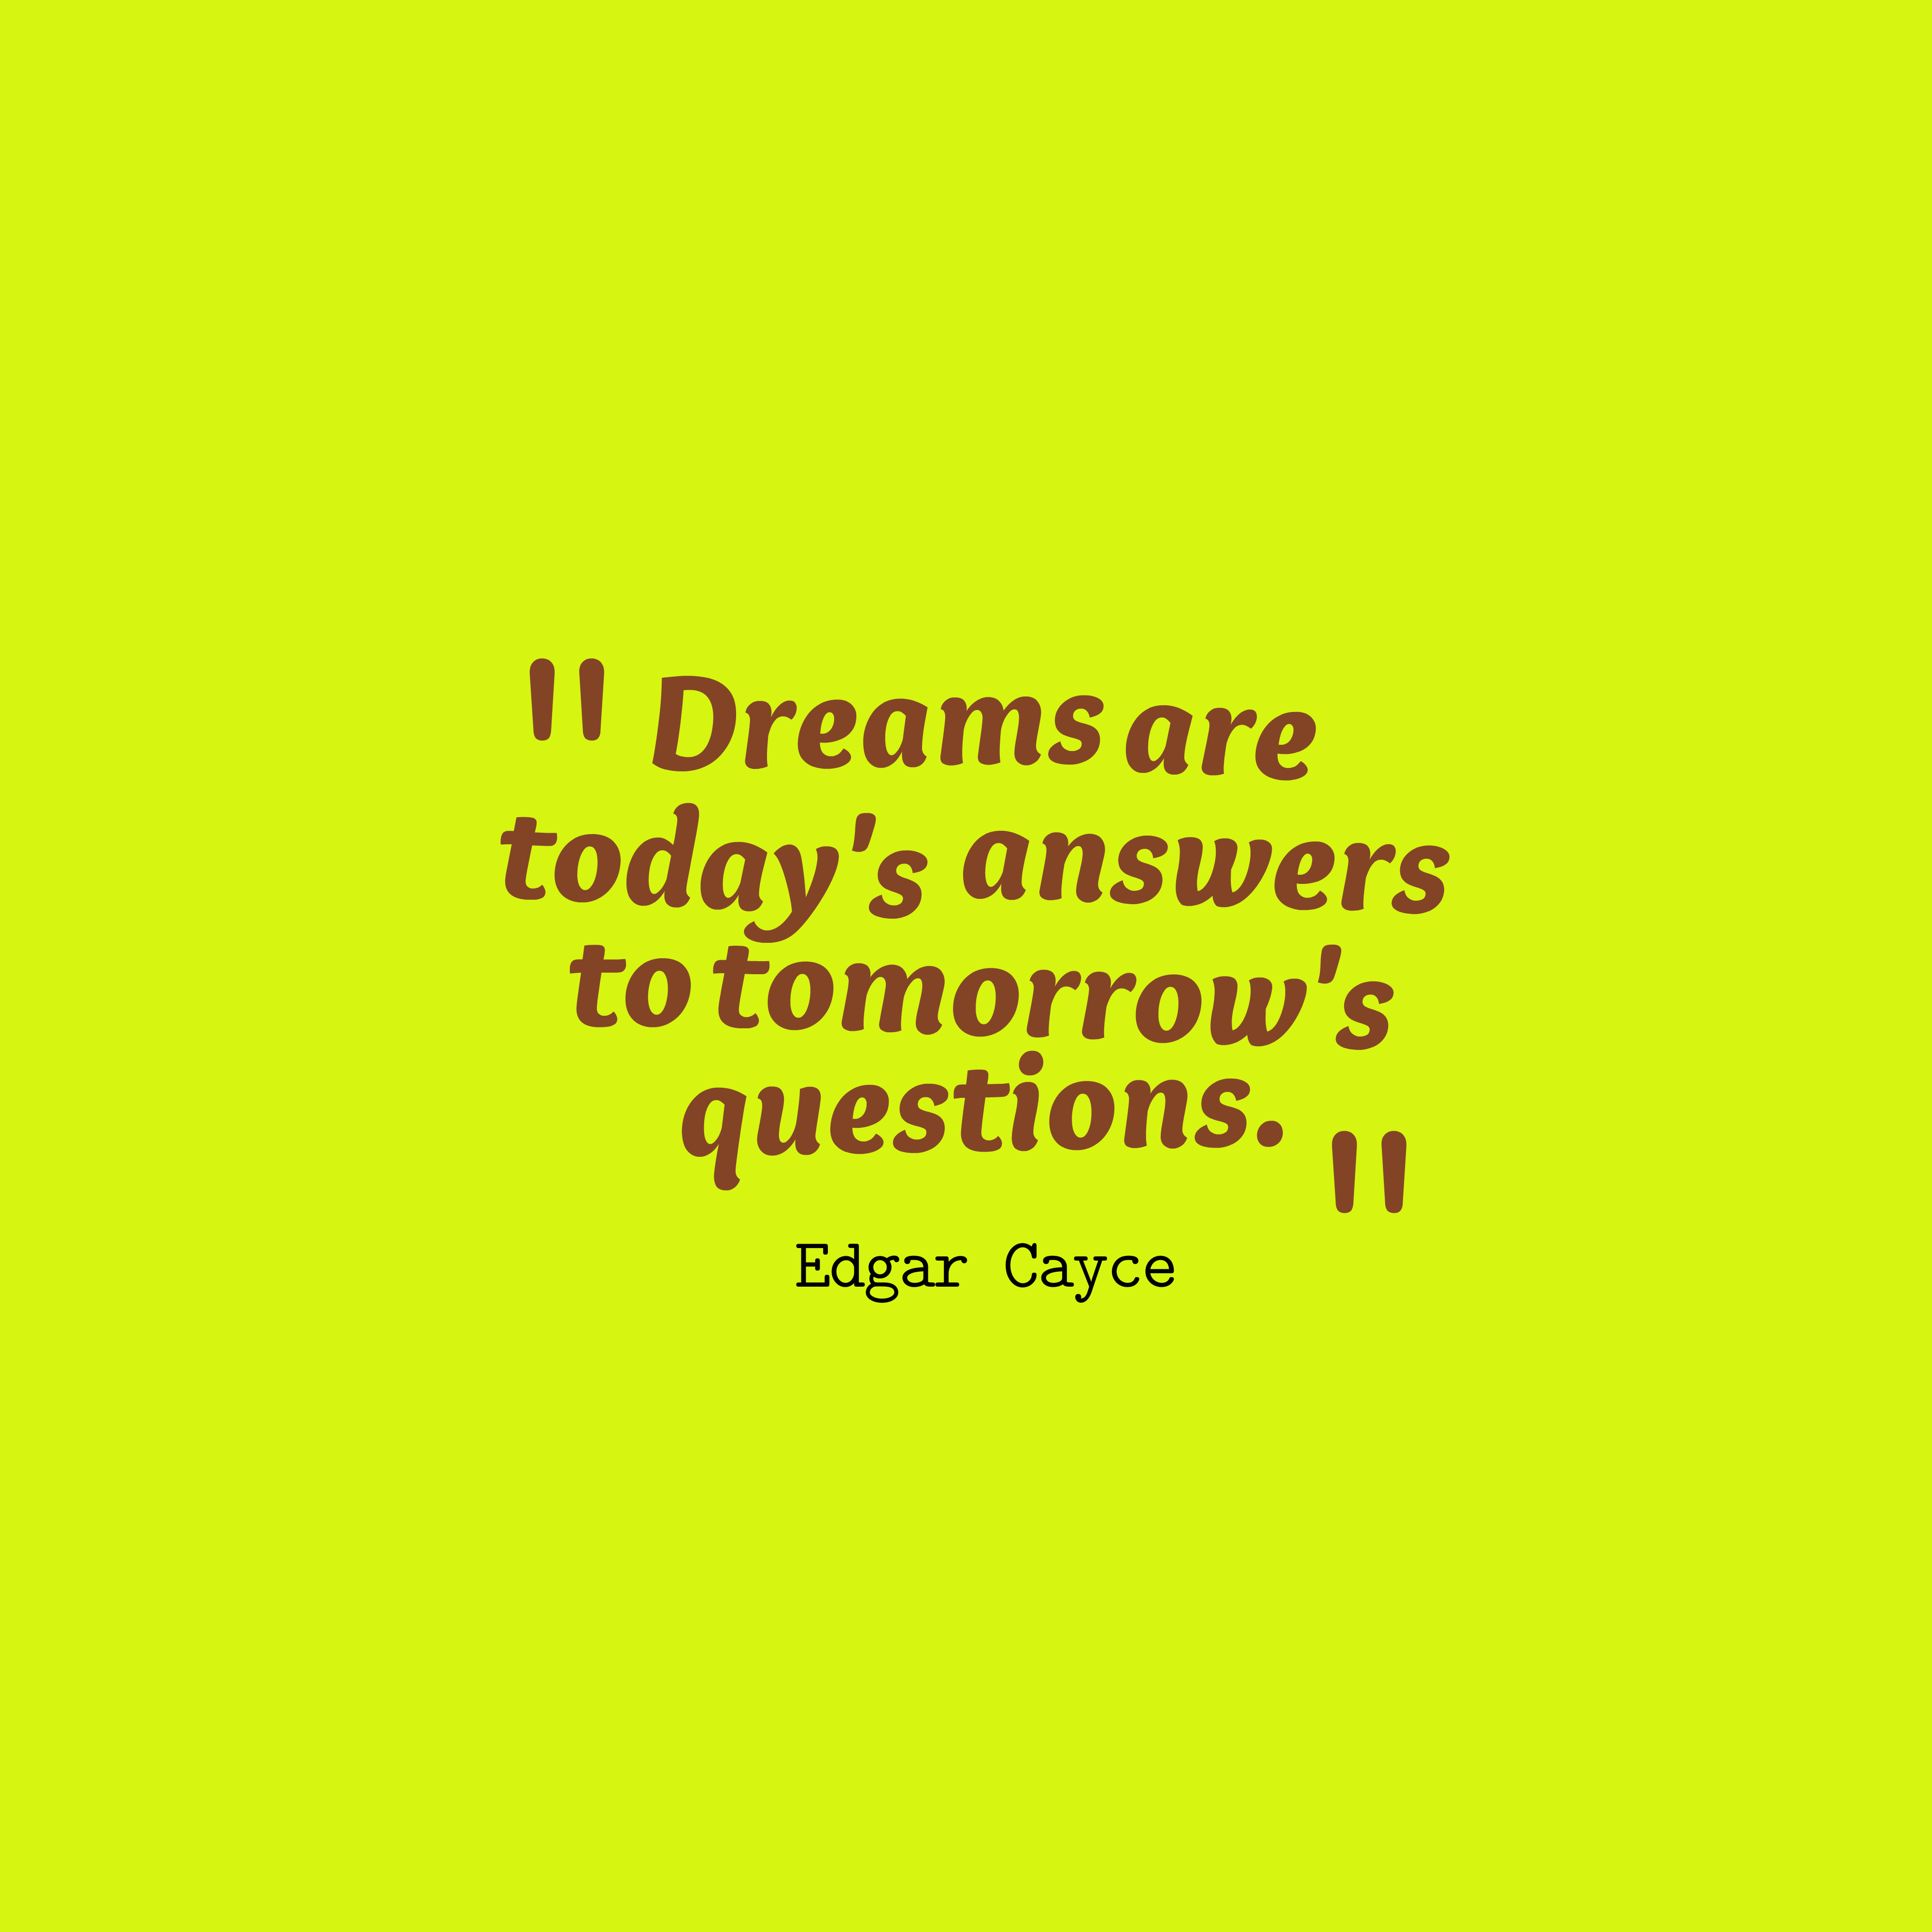 hi-res image of Dreams are today's answers to tomorrow's questions.